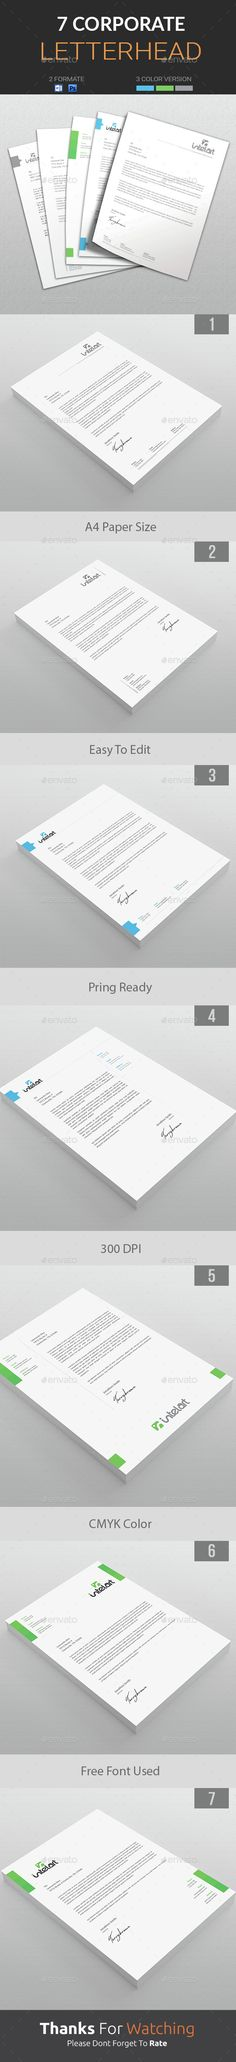 Company #Letterhead Template is an awesome letterhead design suitable for…                                                                                                                                                     More